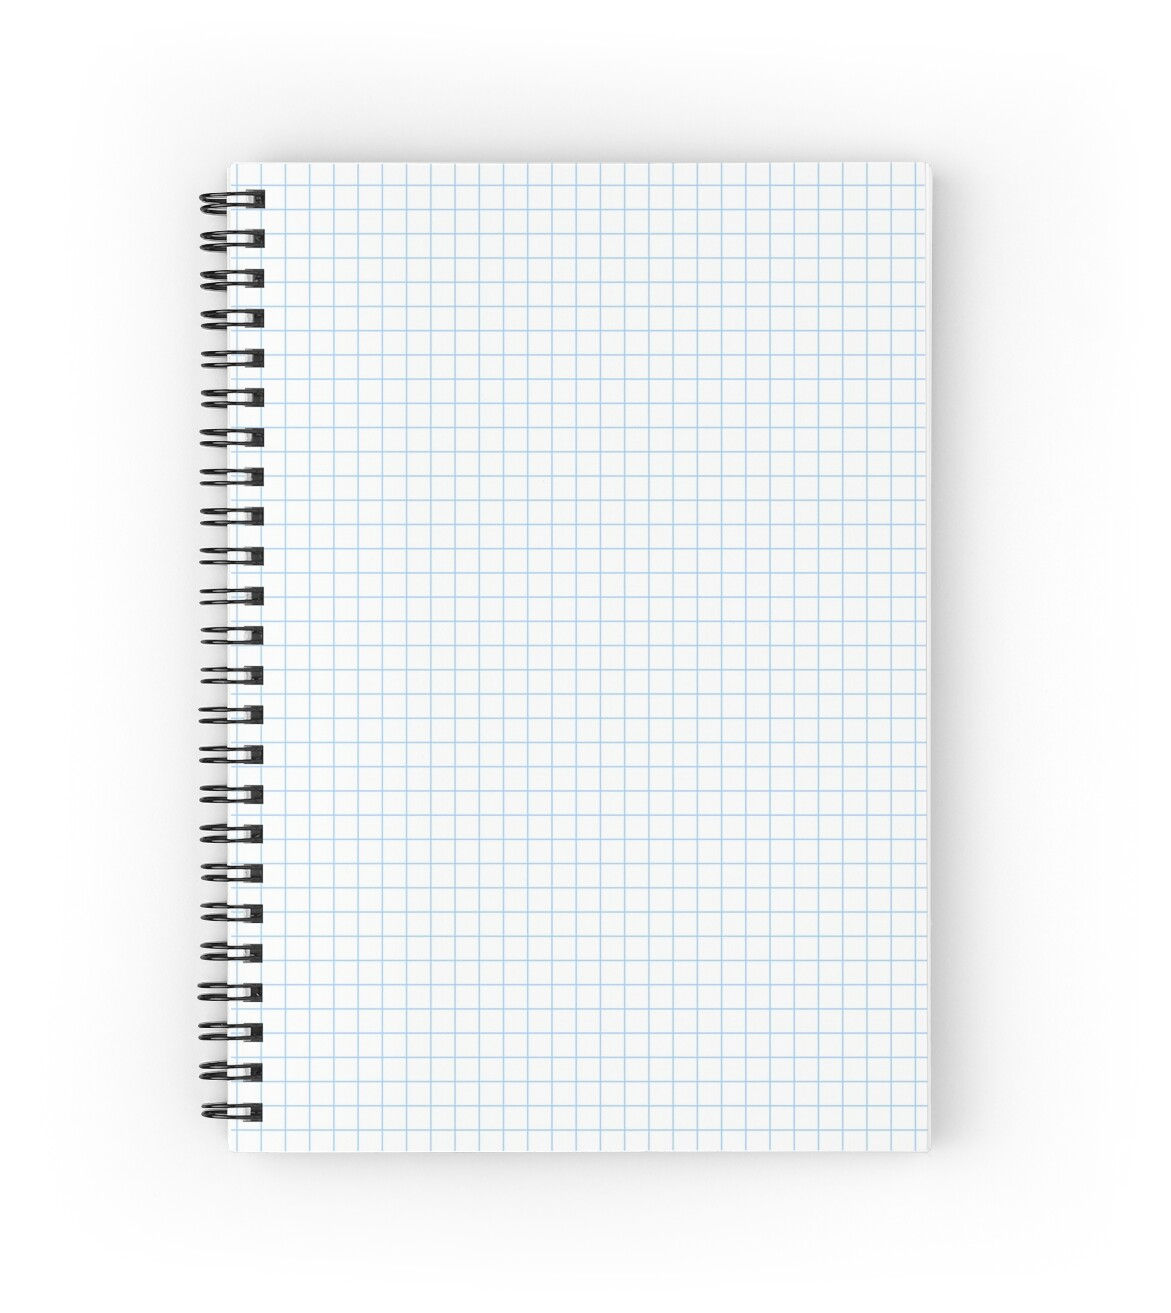 worksheet Images Of Graph Paper graph paper spiral notebooks by ronsmith57 redbubble ronsmith57